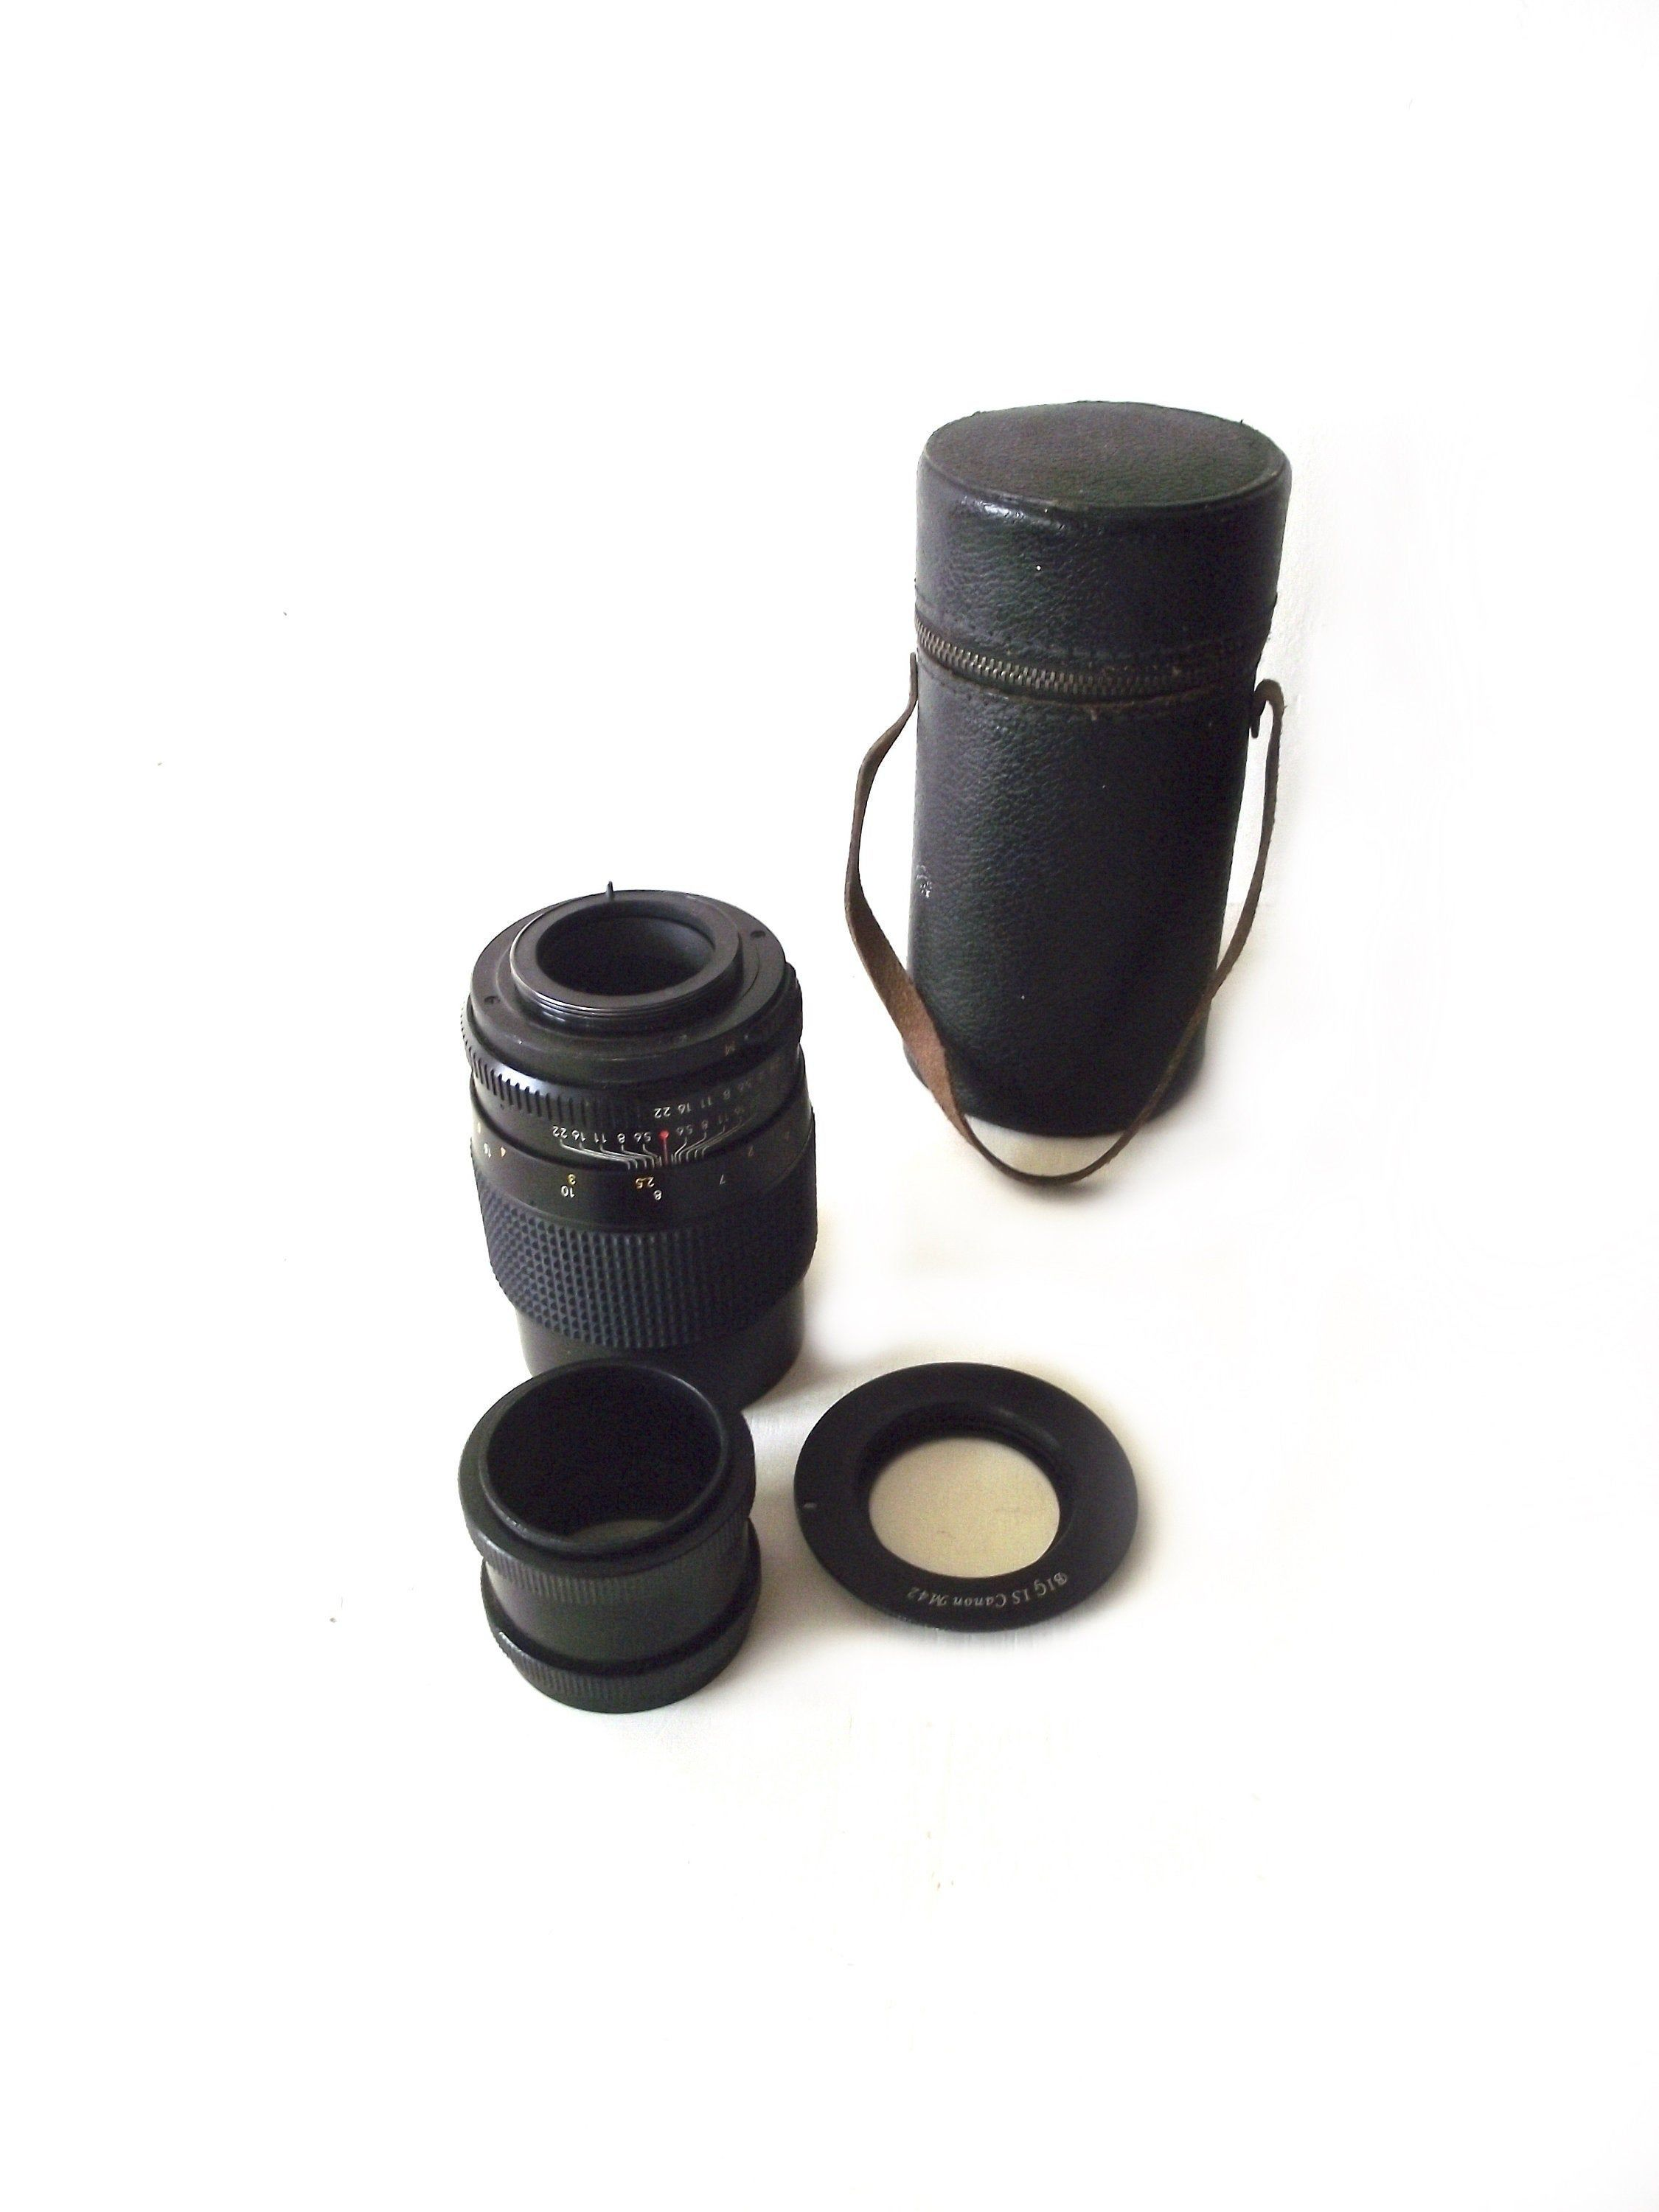 Lens Adapter For M42 Lens to Canon EOS 1000D 1100D T3i T2i With AF Confirm DC133